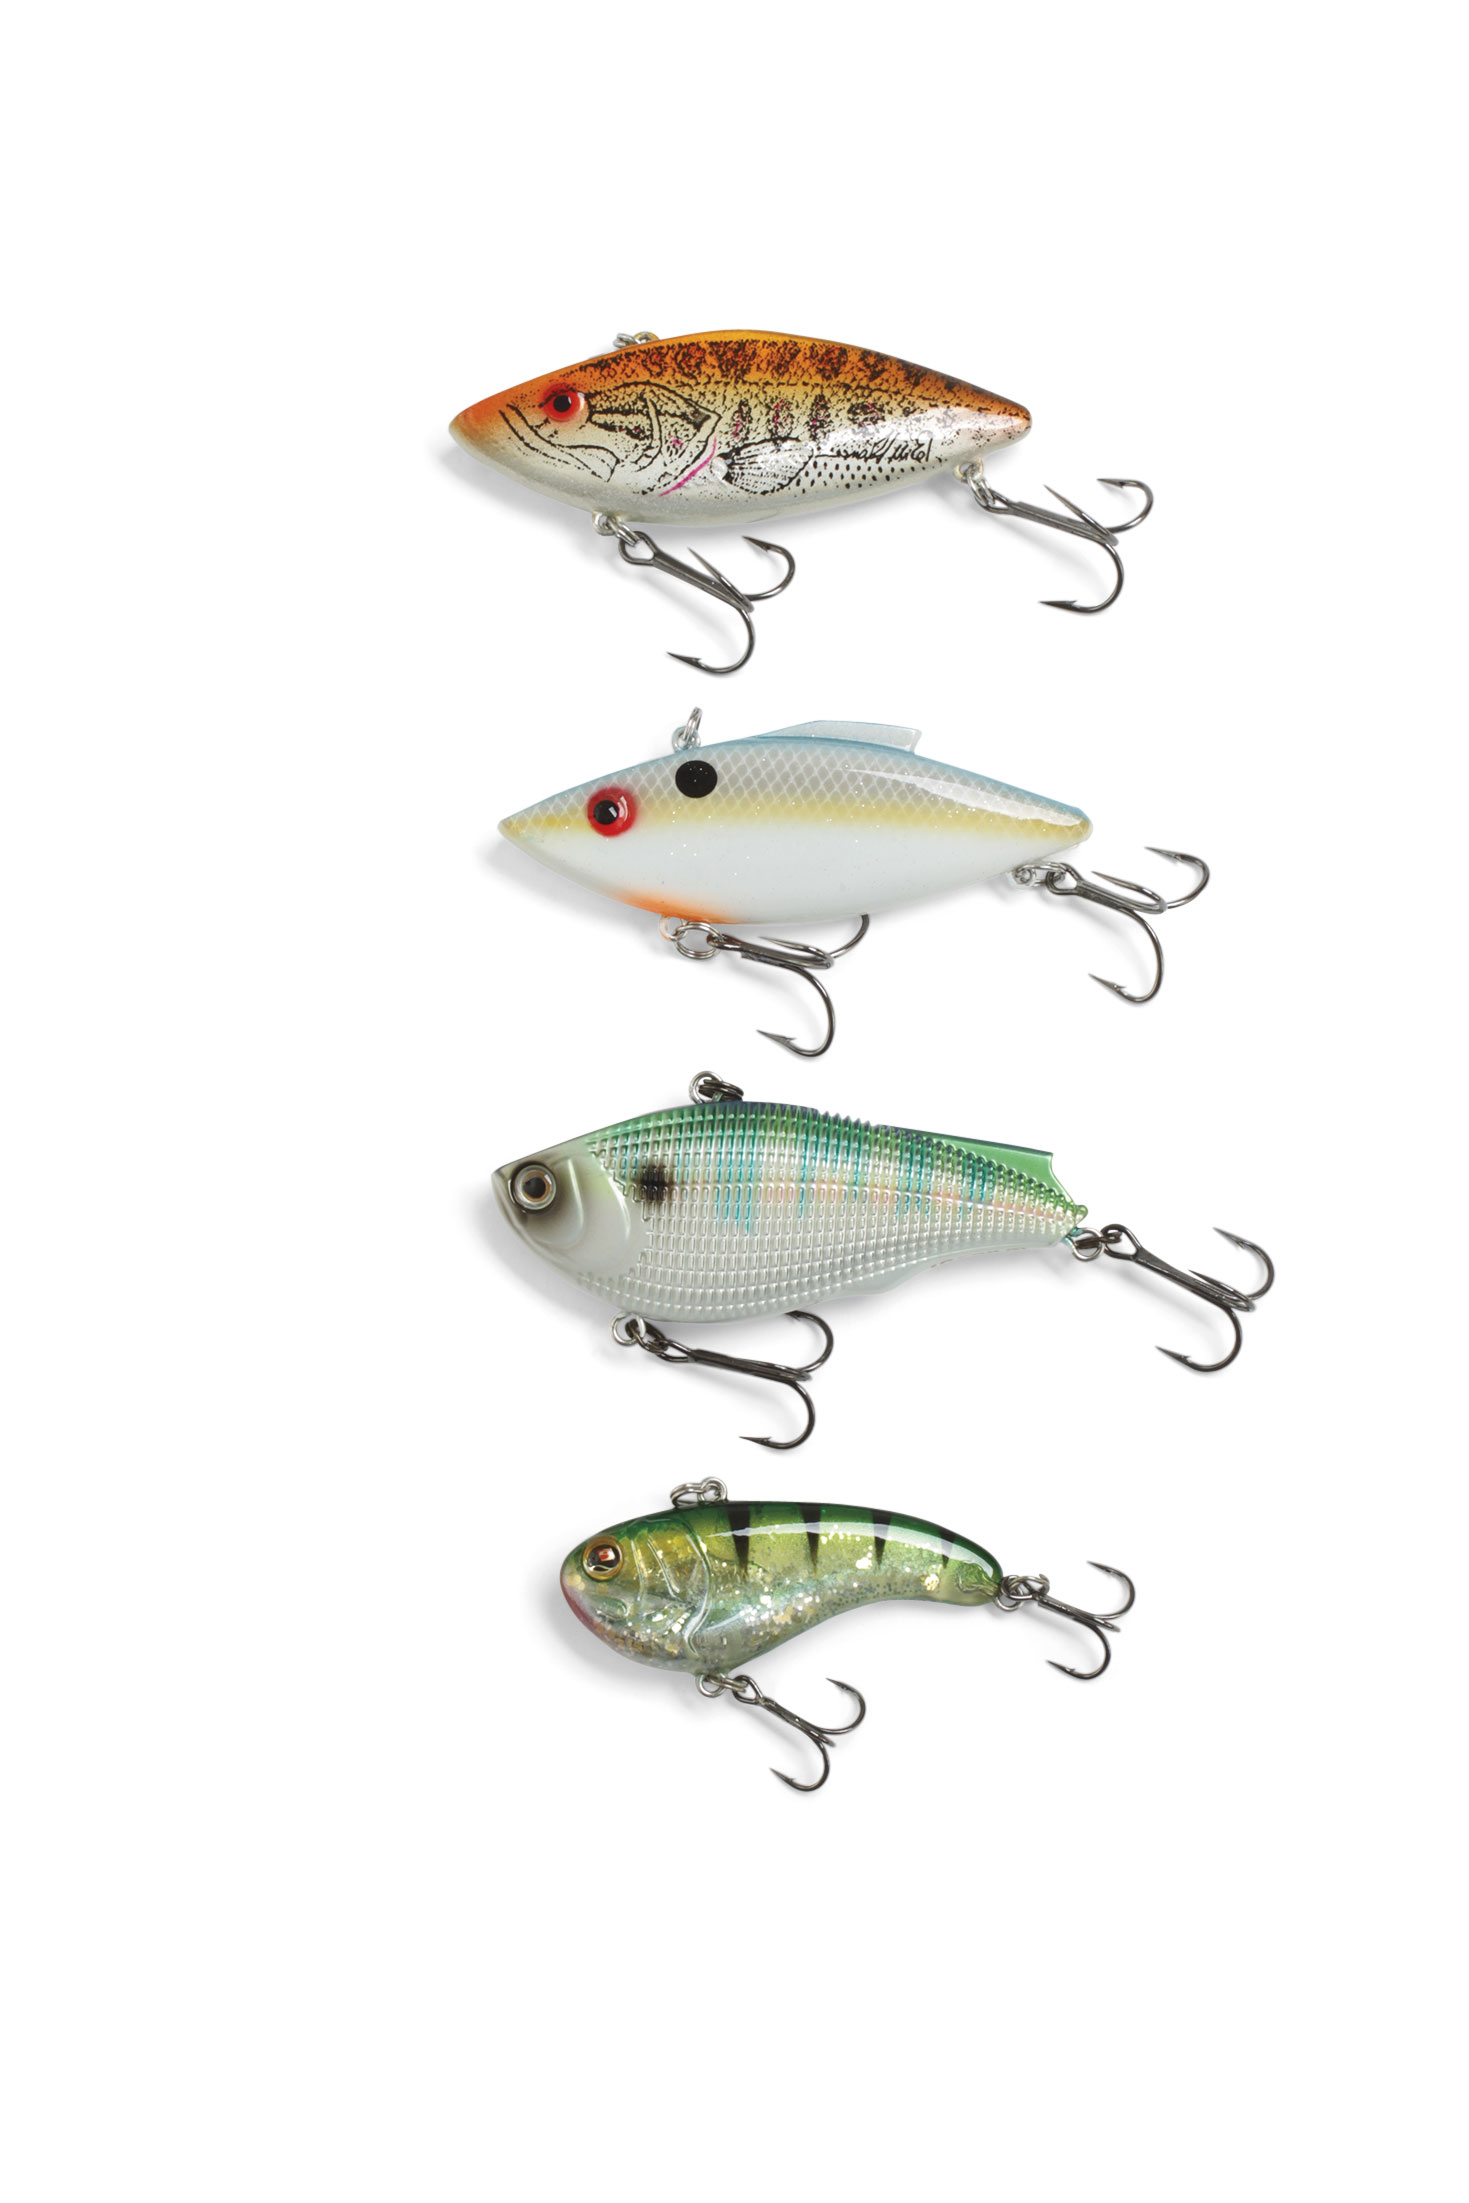 bait for large mouth bass